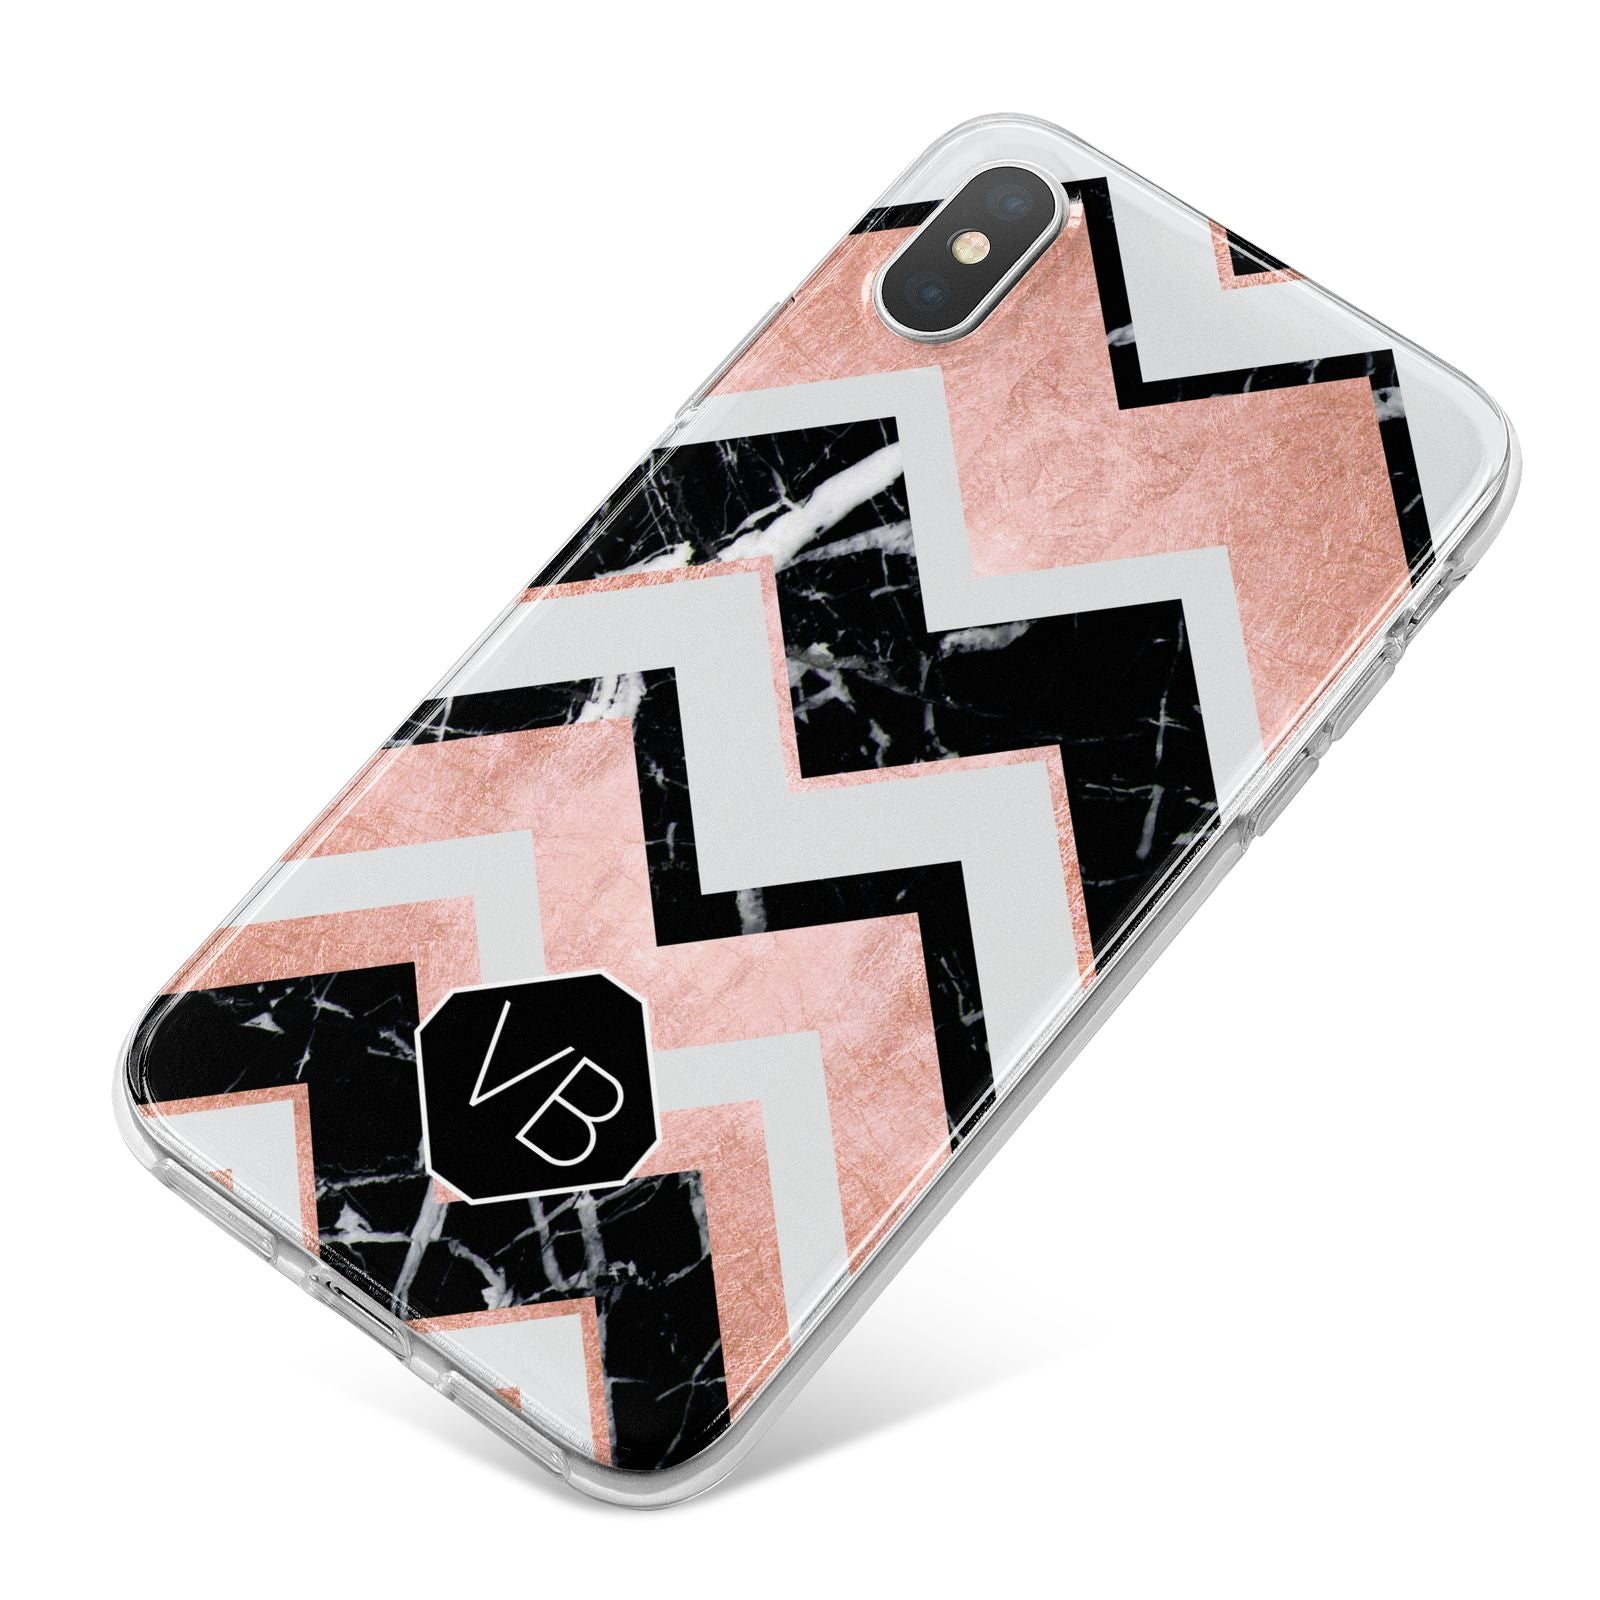 Personalised Chevron Marbled Initials iPhone X Bumper Case on Silver iPhone